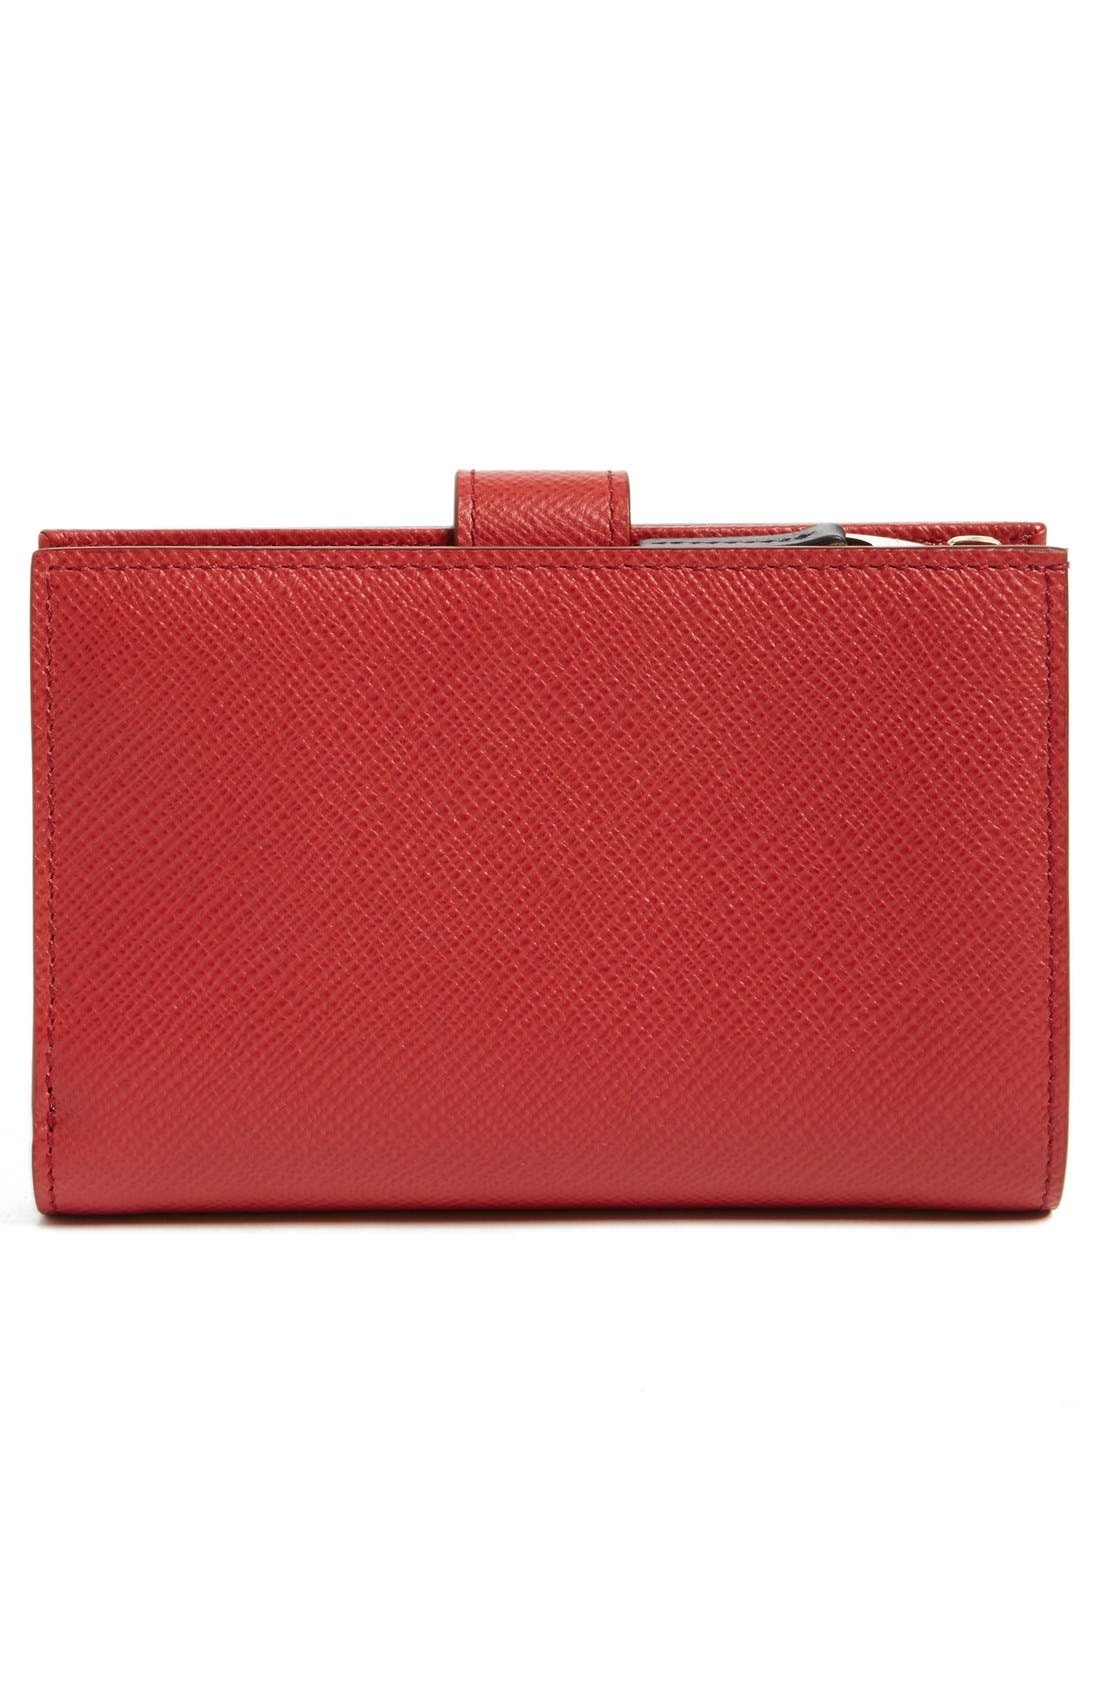 'Medium' Continental Wallet,                             Alternate thumbnail 4, color,                             Red